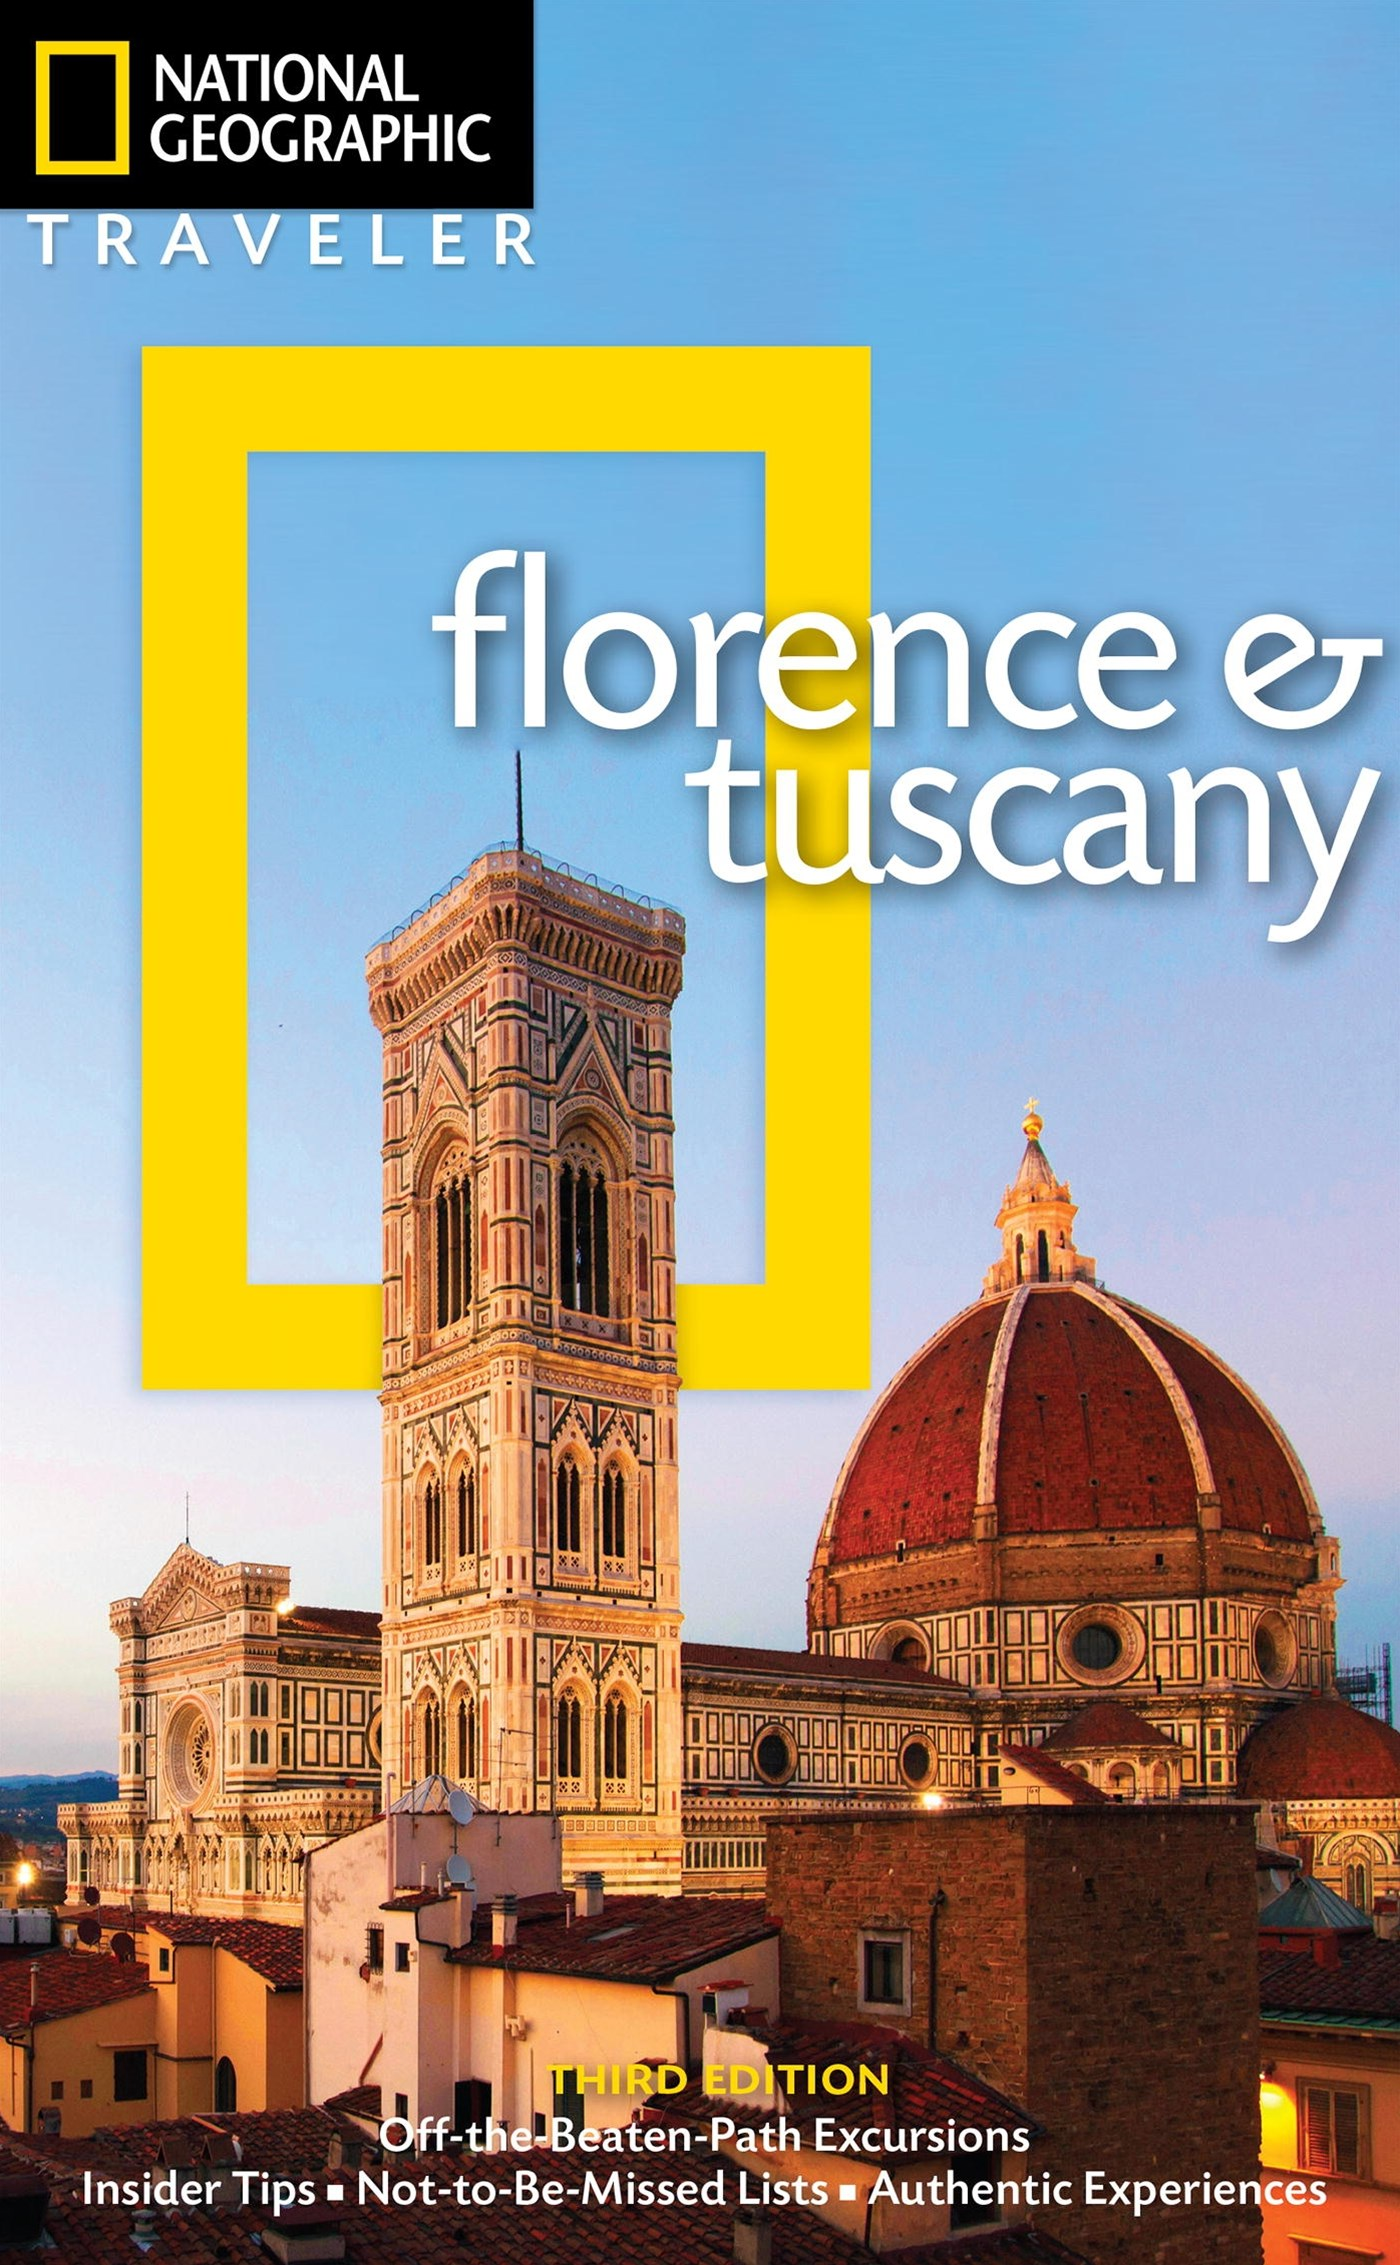 National Geographic Traveler - Florence and Tuscany